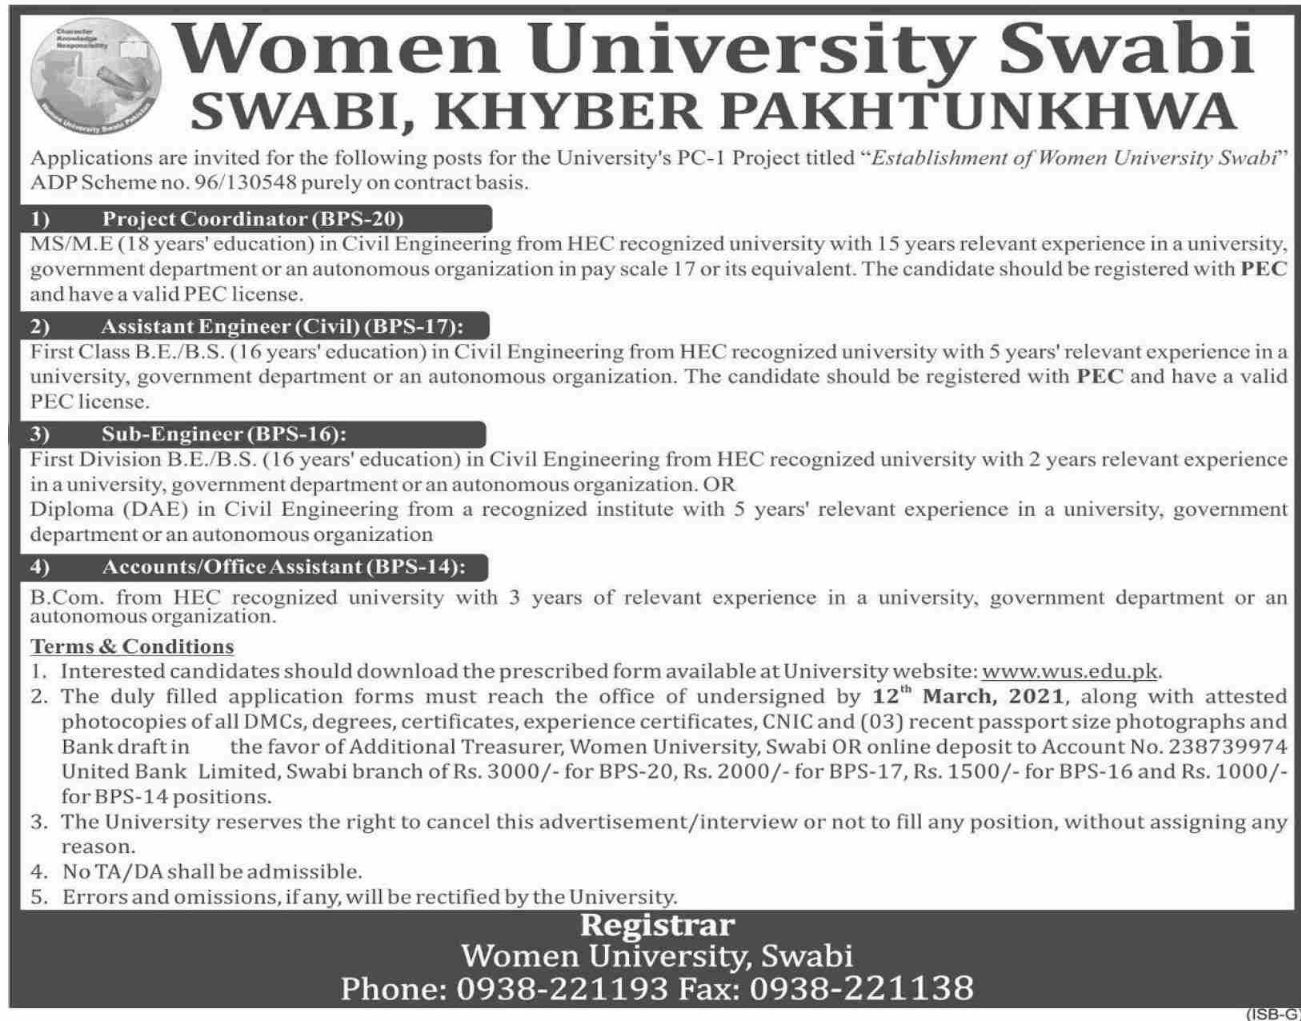 Women University - Swabi